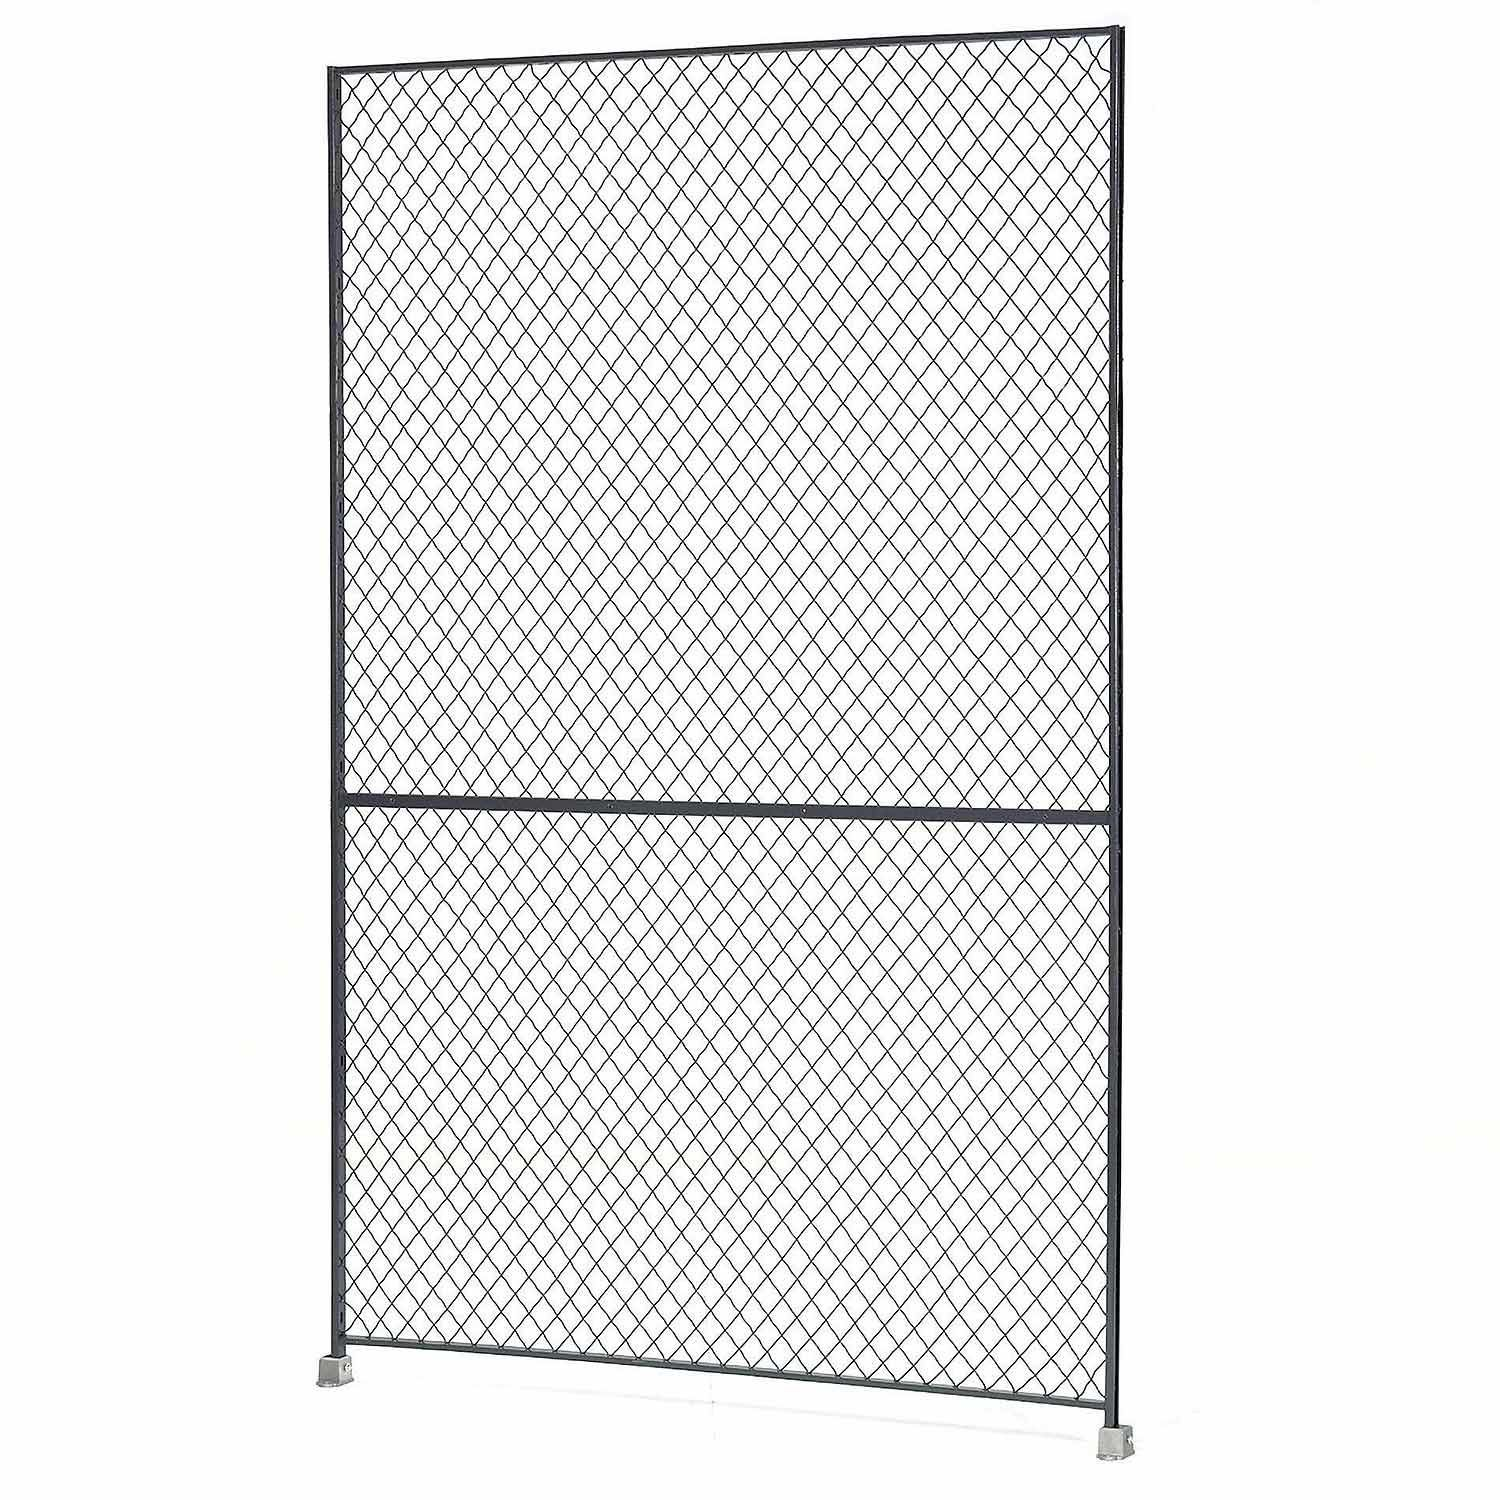 Wire Mesh Partitions Fencing Partition Security Enclosures Wire Mesh Panel 5x8 603324 Globalindustrial Com Wire Mesh Mesh Panel Wire Mesh Fence